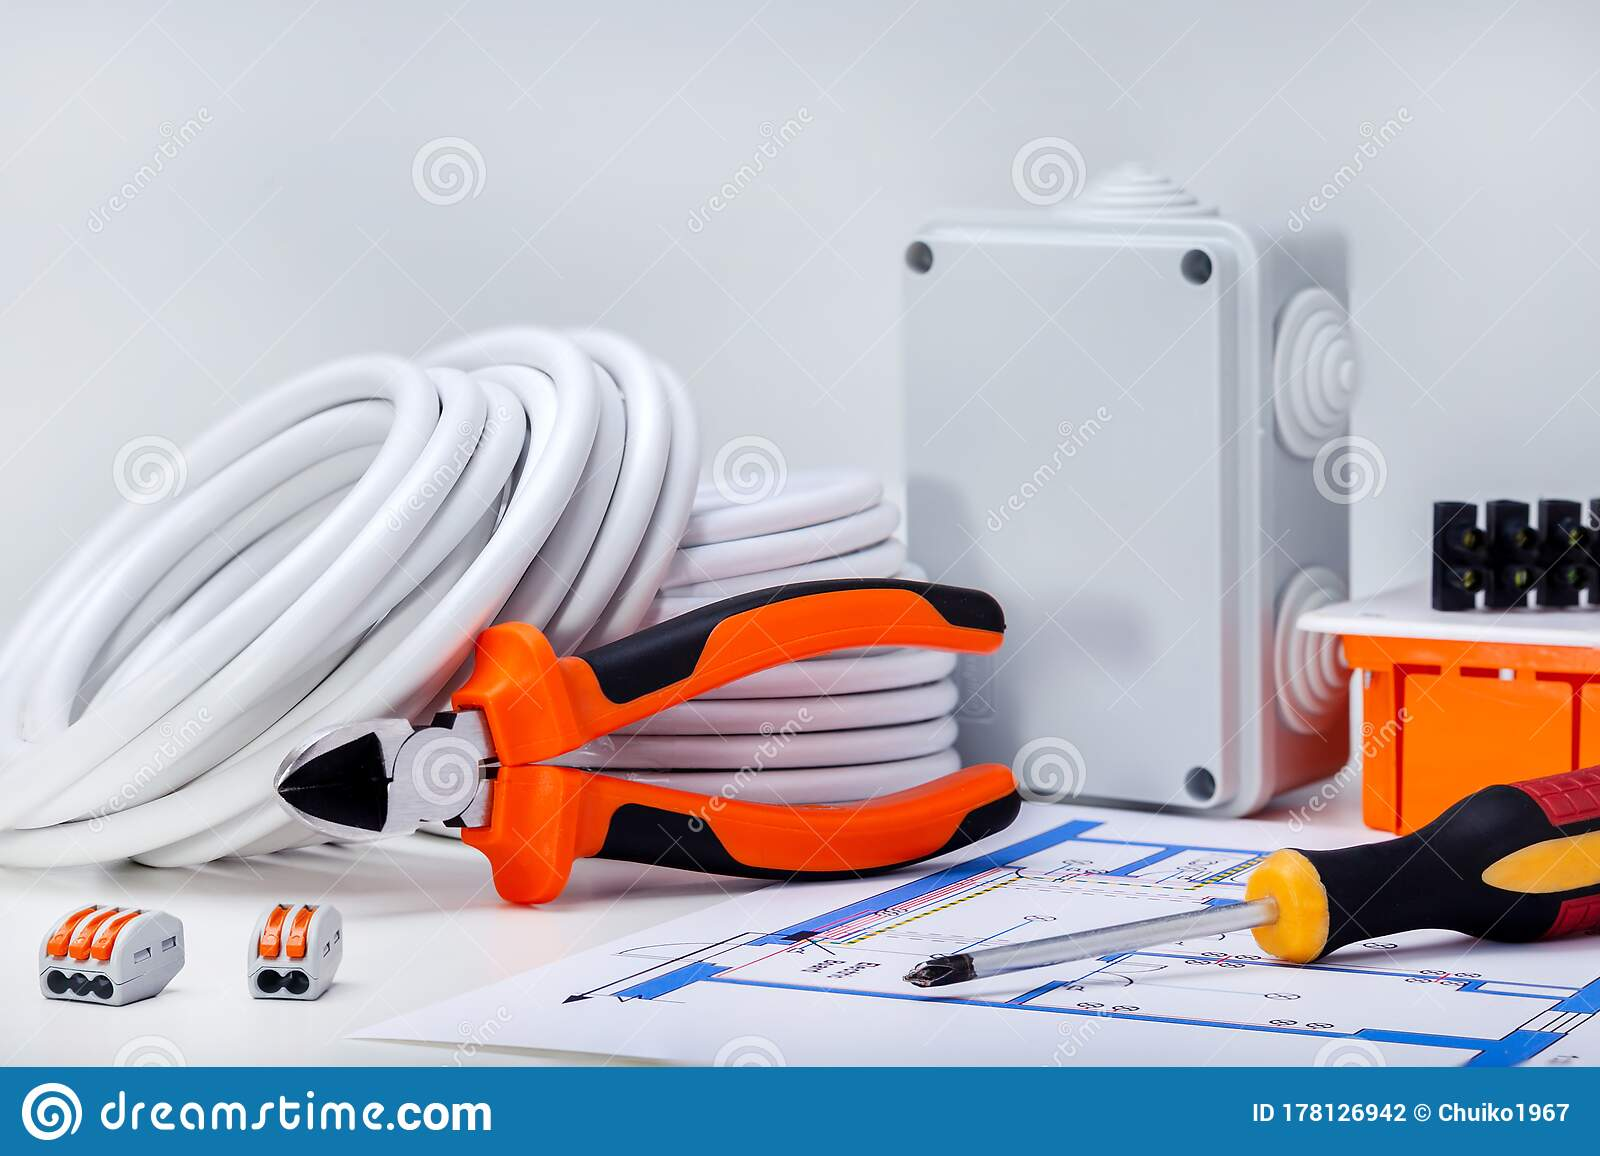 Electrical Equipment And Tools Stock Photo Image Of Electrical Switch 178126942